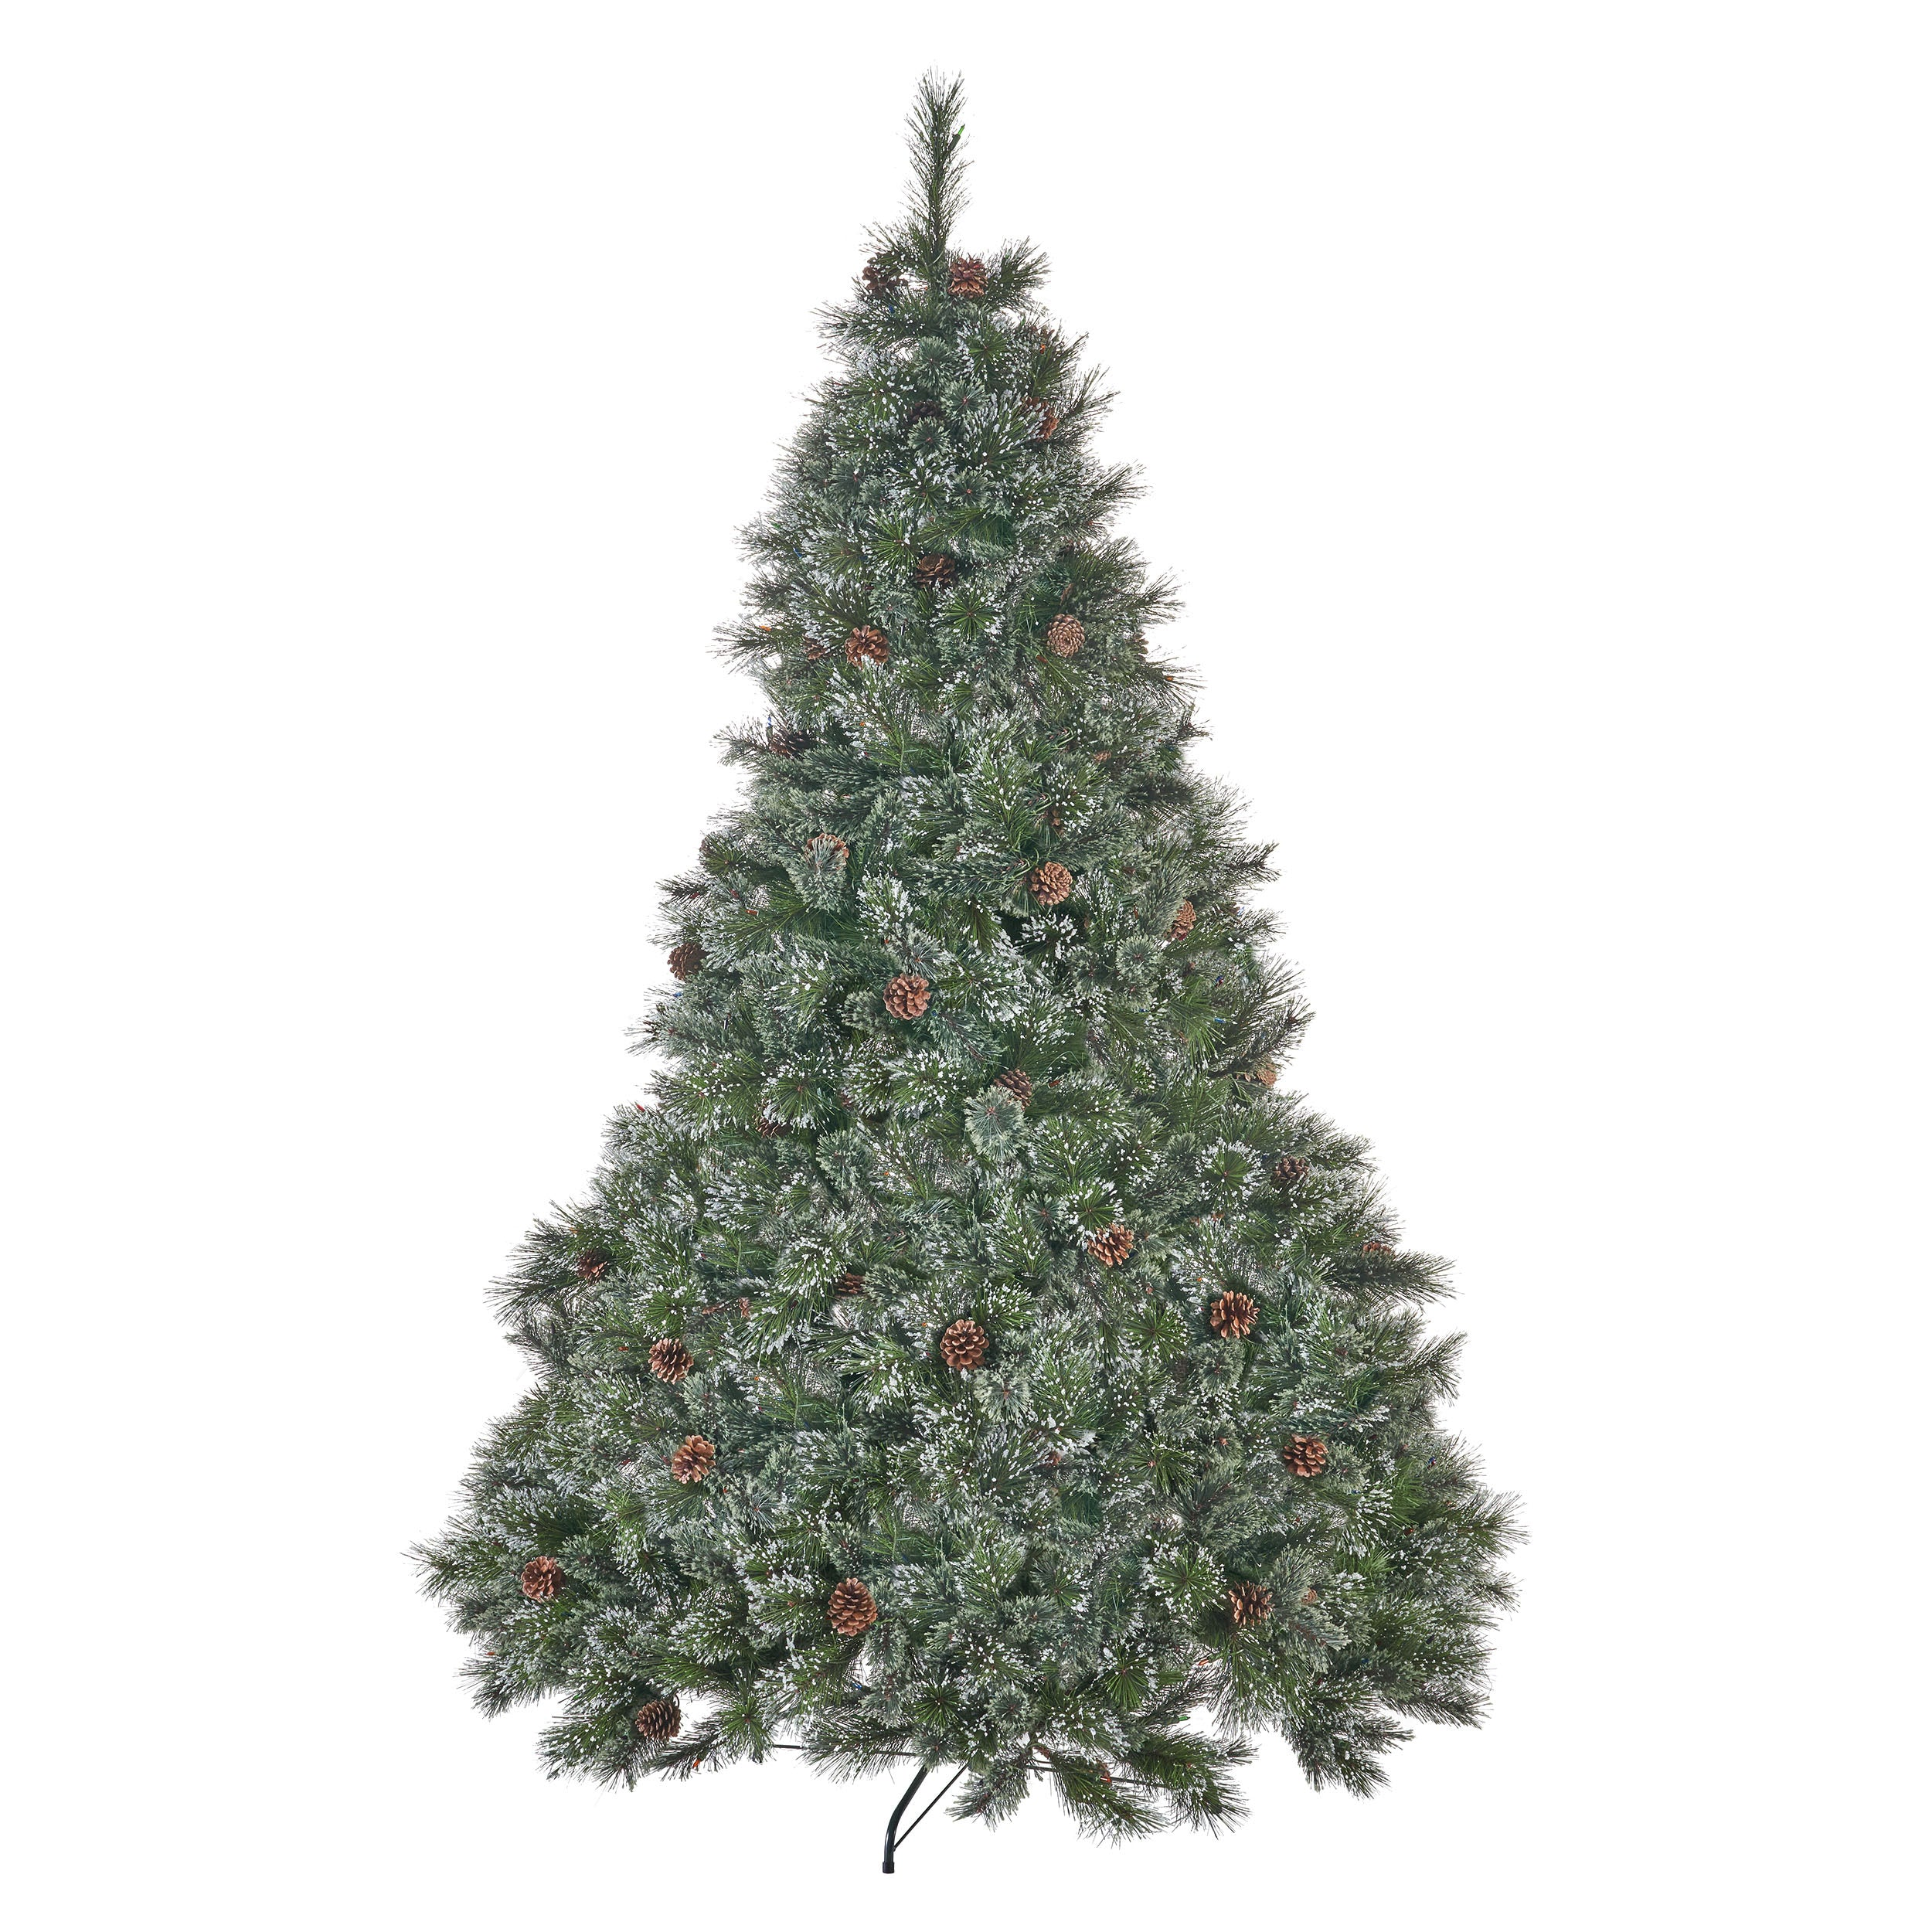 7 foot Cashmere Pine and Mixed Needles Hinged Artificial Christmas Tree with Snowy Branches and Pinecones